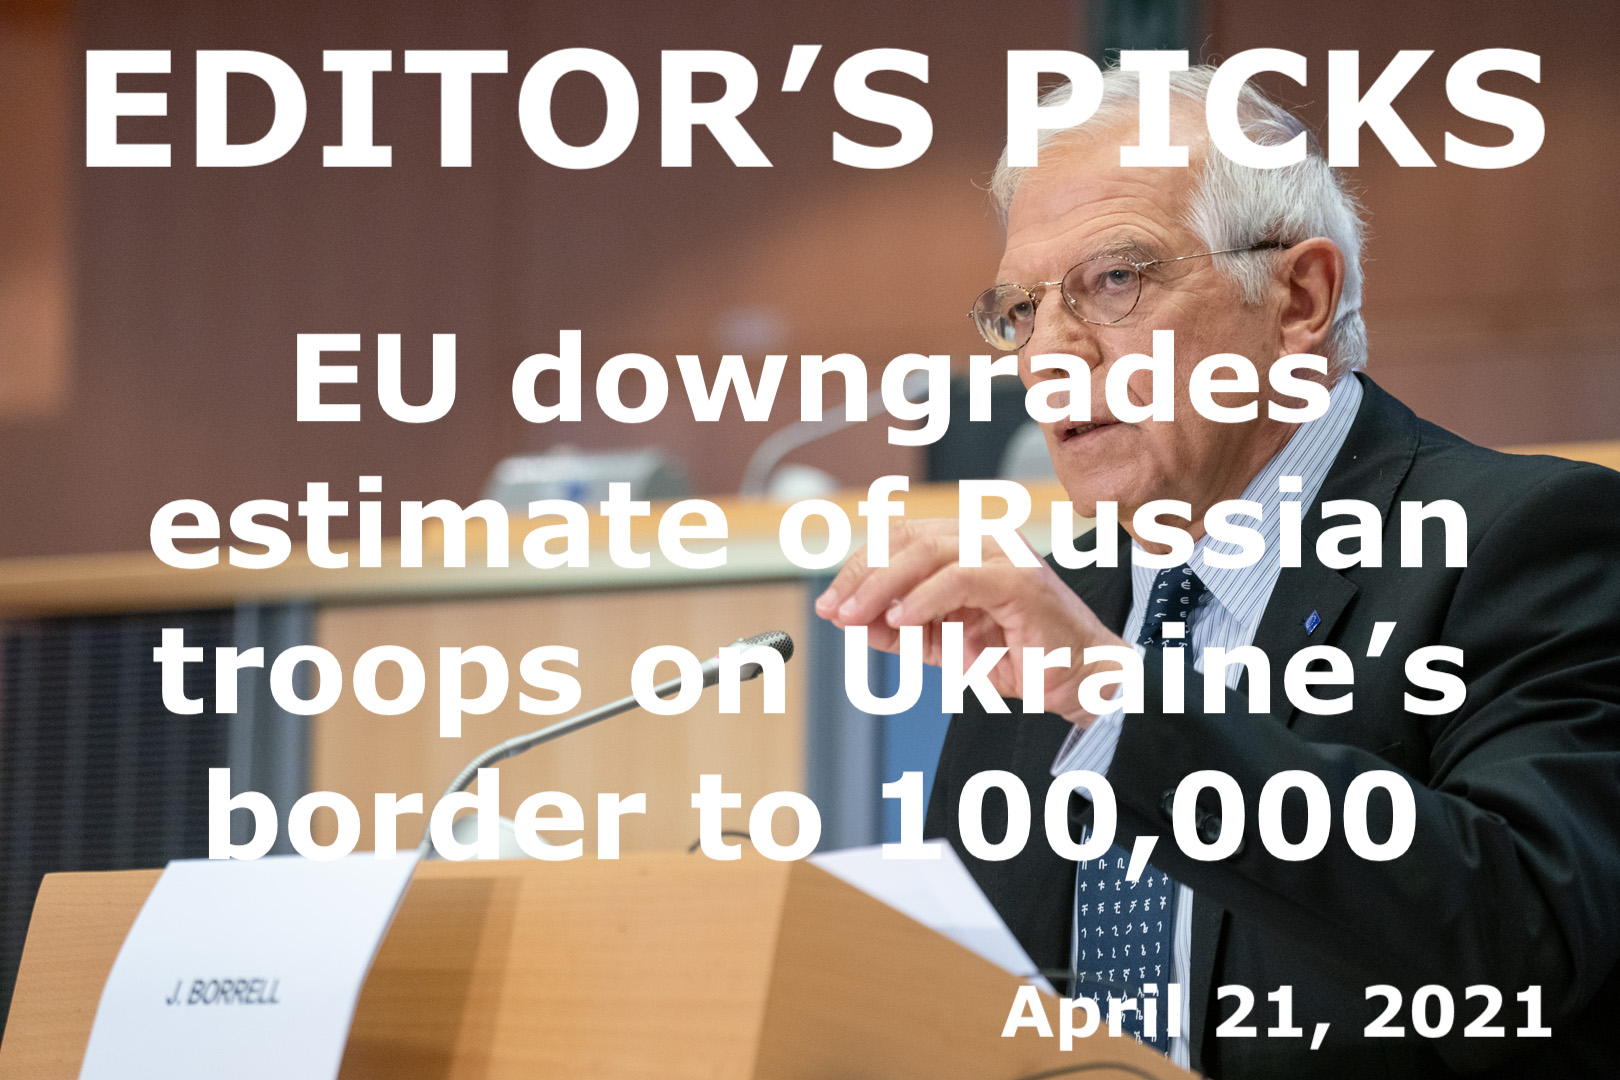 bne IntelliNews Editor's Picks --  EU downgrades its estimate of Russian troops on Ukraine's border to 100,000 but tensions remain high